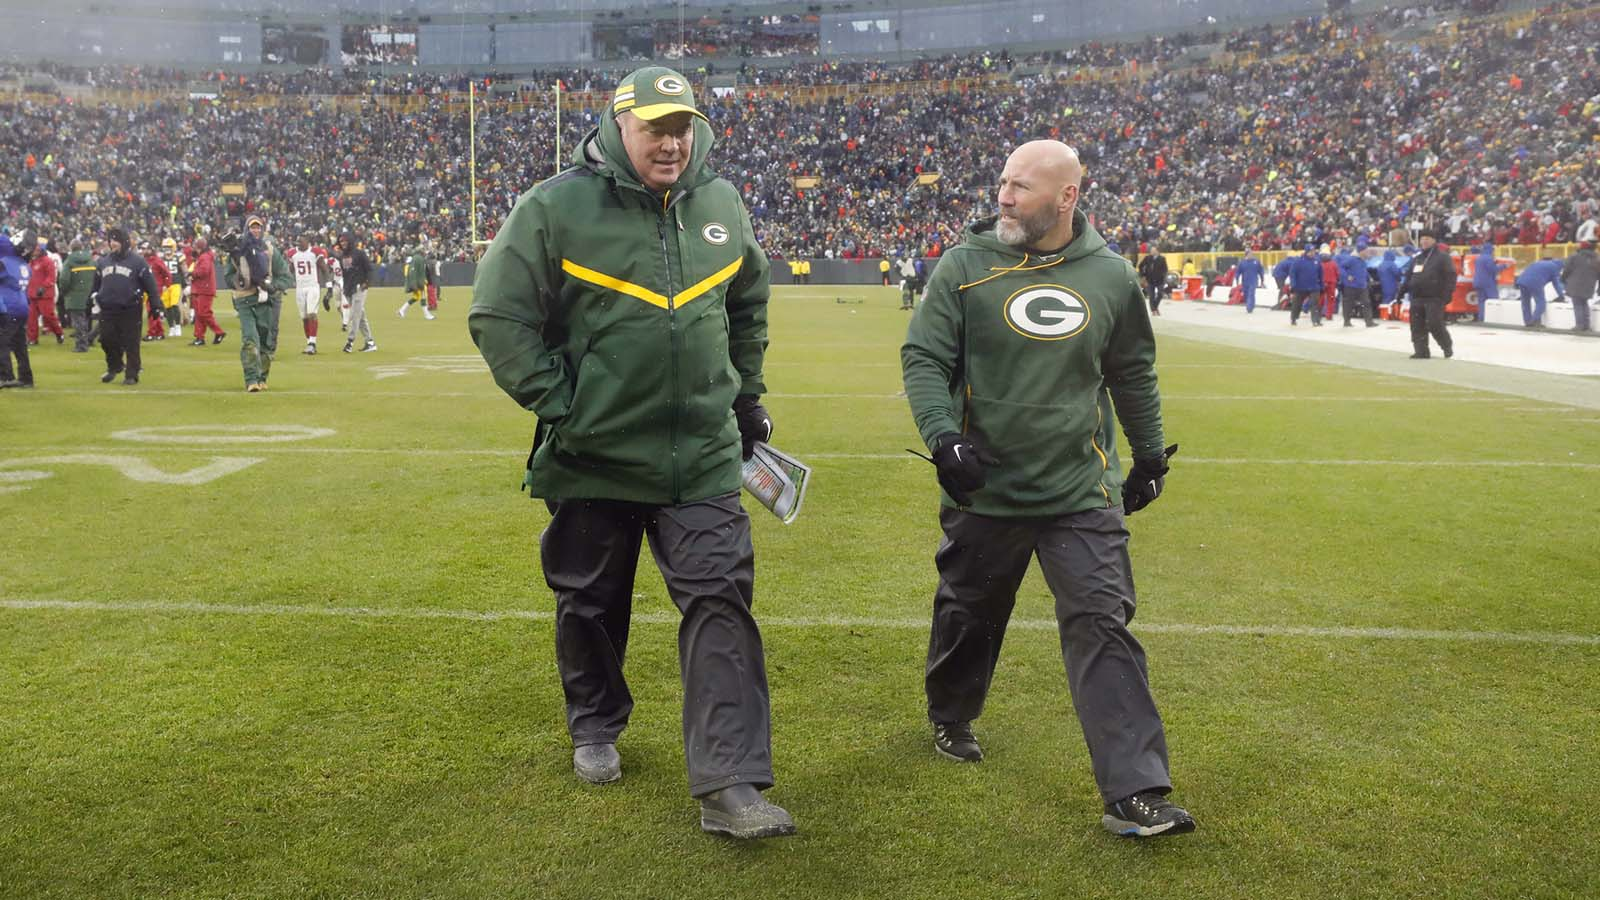 Green Bay Packers head coach Mike McCarthy, left, leaves the field after an NFL football game against the Arizona Cardinals, Sunday, Dec. 2, 2018, in Green Bay, Wis. McCarthy was fired after the game. (AP Photo/Jeffrey Phelps)